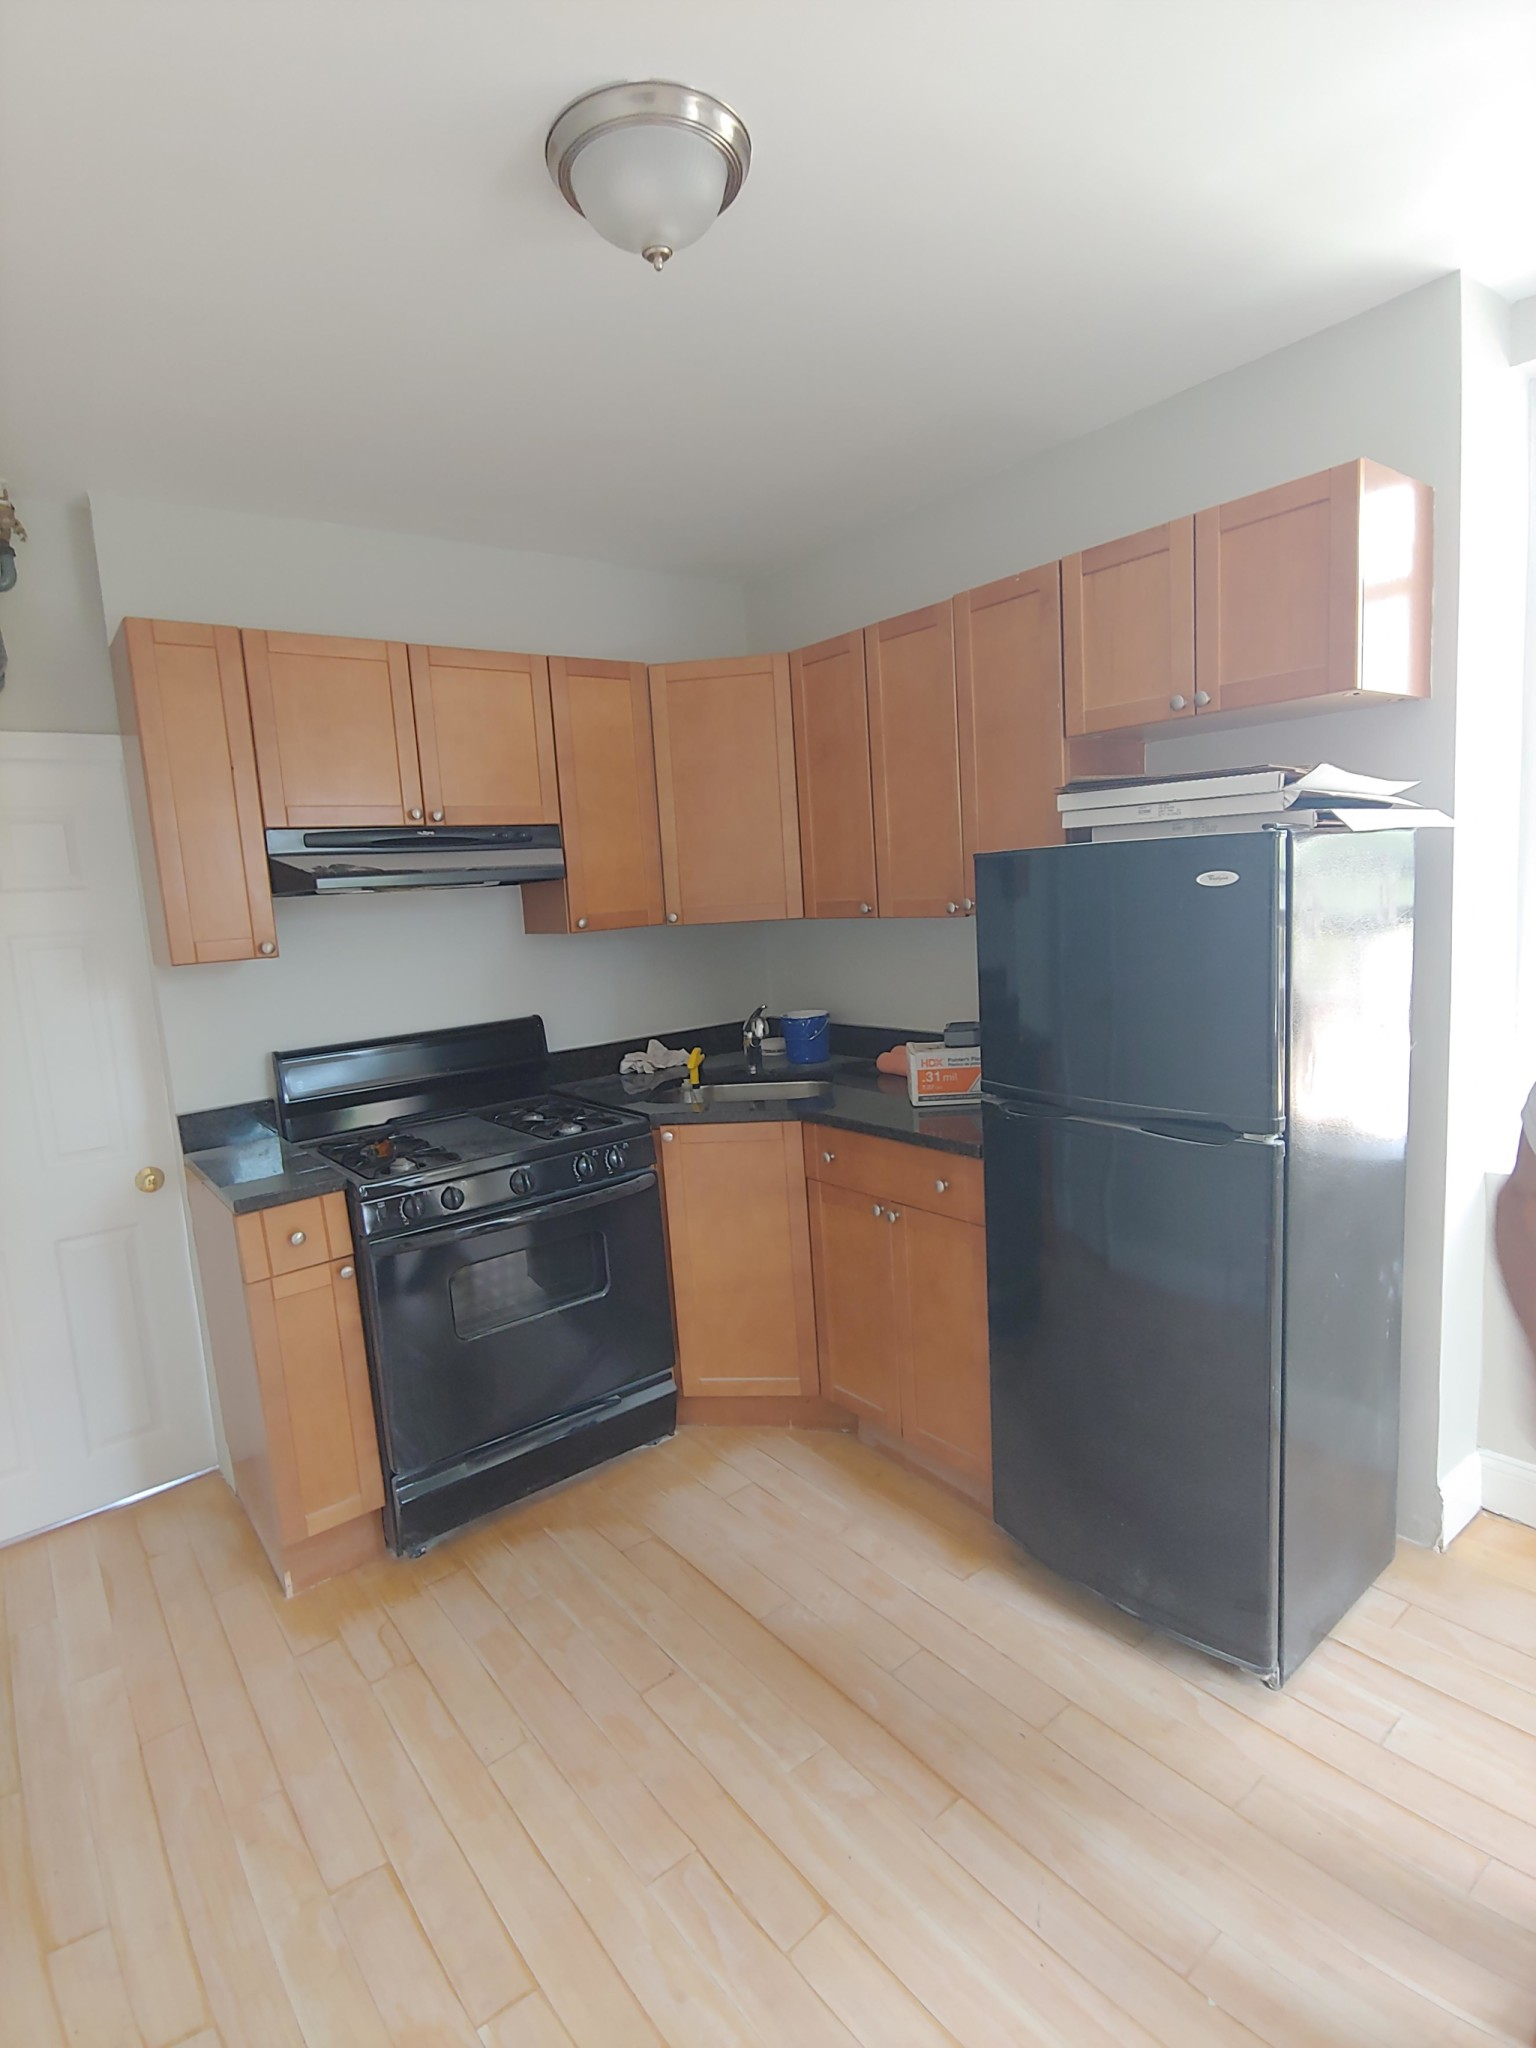 2 Beds, 1 Bath apartment in Boston, Beacon Hill for $2,650